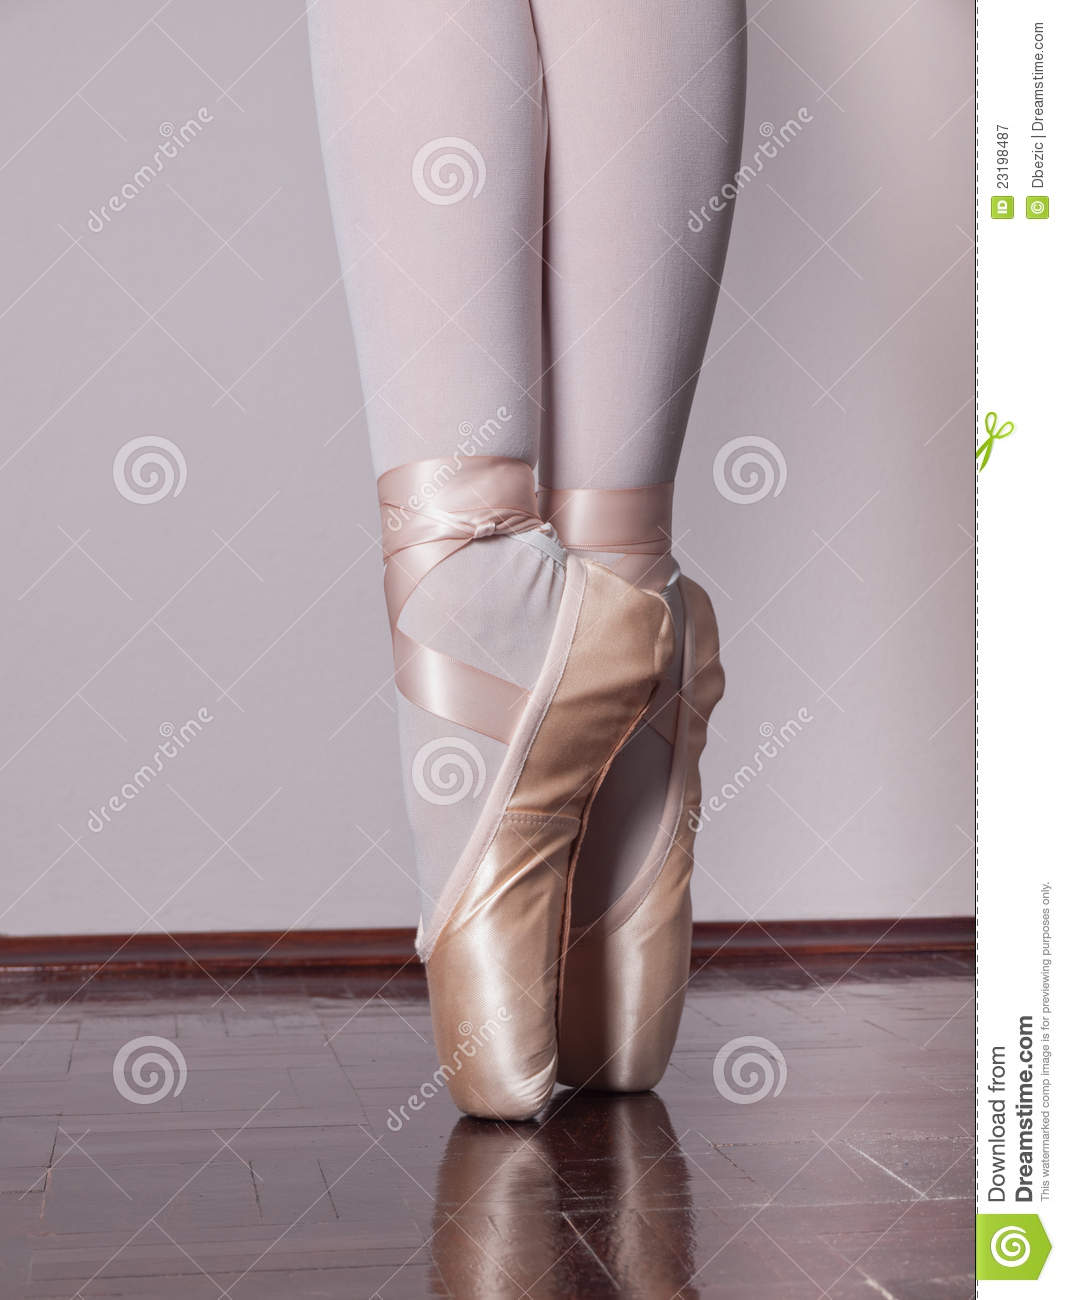 dancer in ballet pointe shoes stock image image 23198487